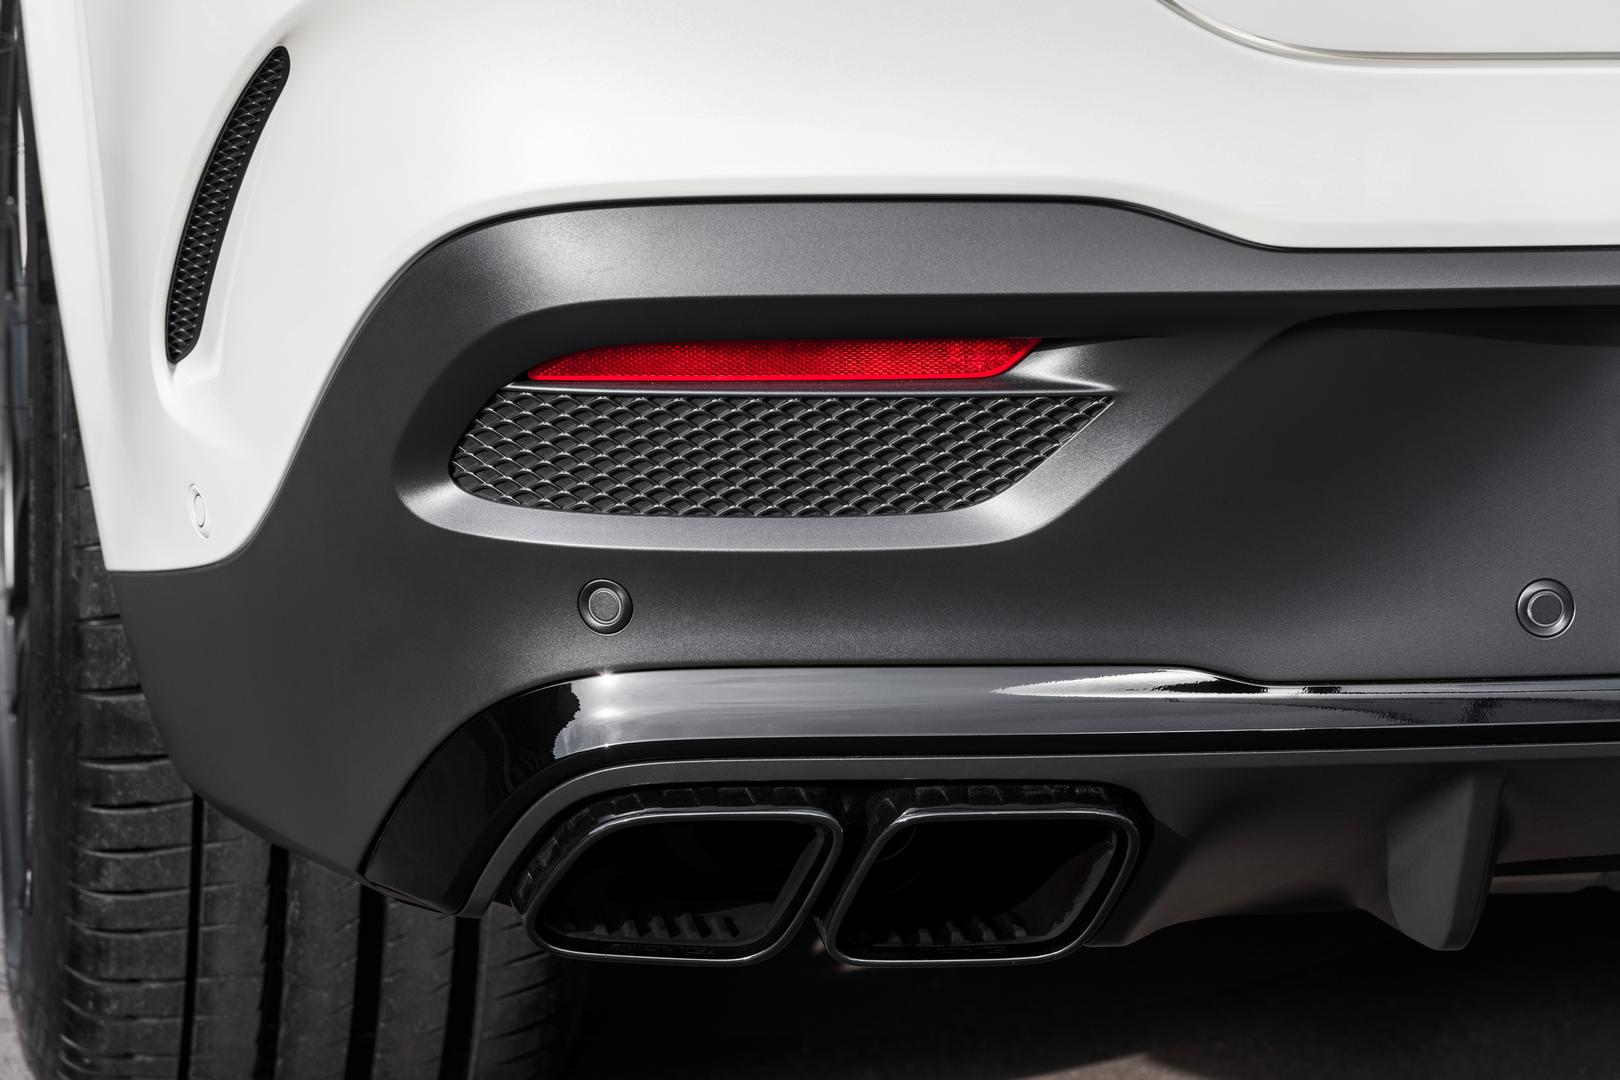 Mercedes-AMG GLE 63 S Coupe Exhaust Pipes